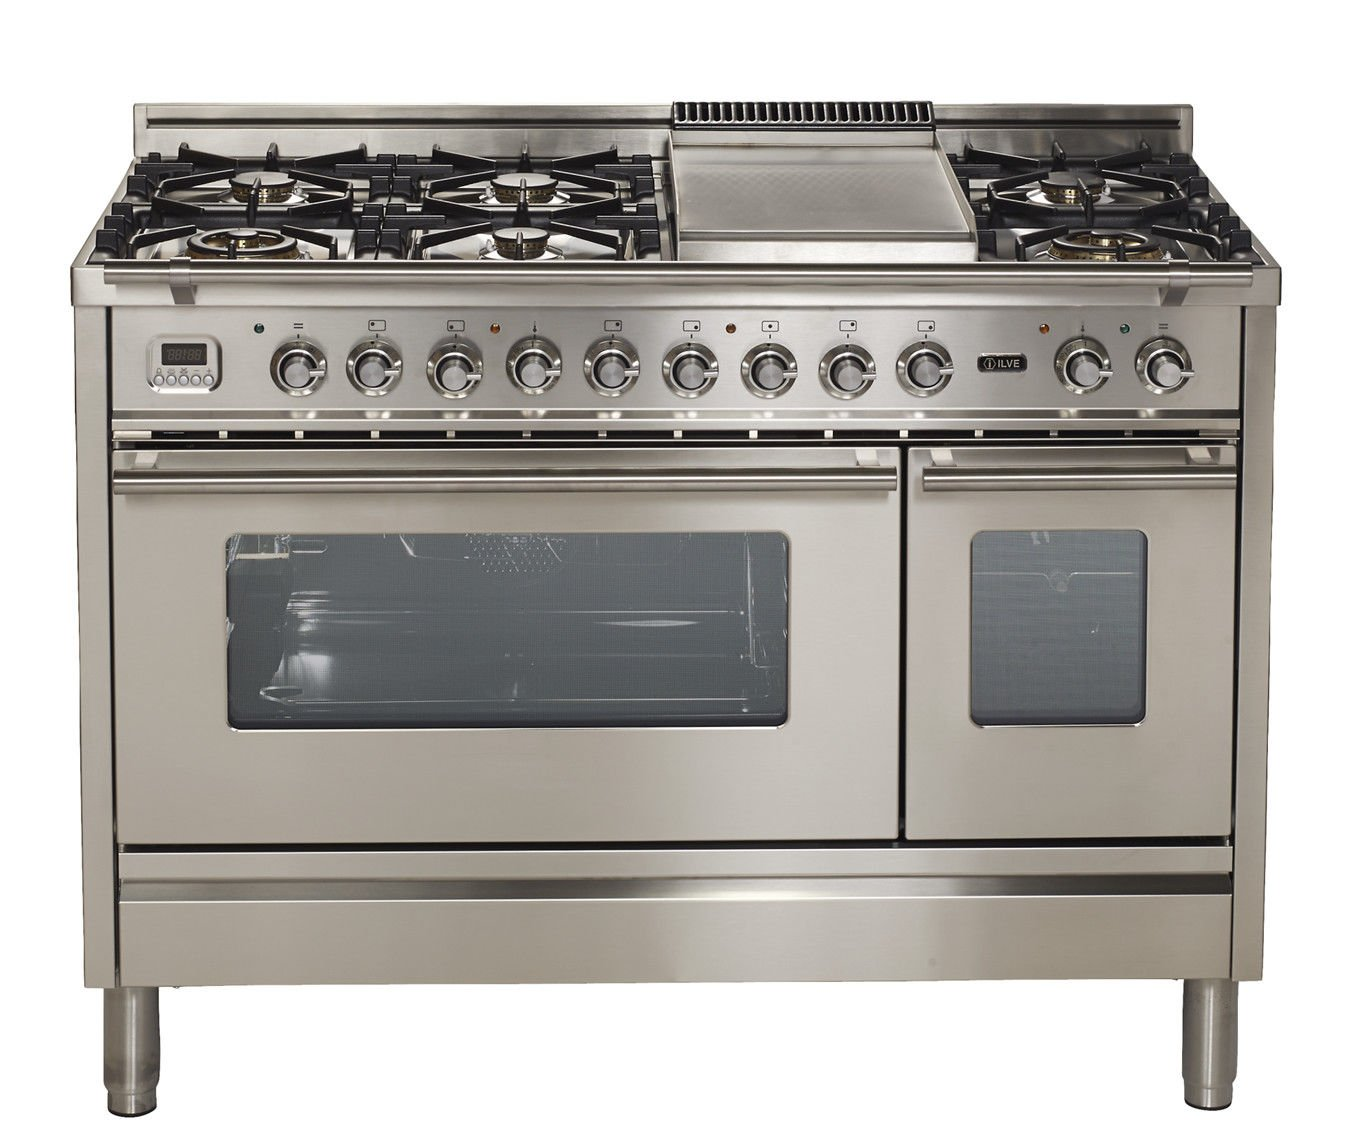 "Ilve UPW120FDMPI Pro Series 48"" Dual Fuel Double Oven Range 7 Burners Griddle Convection Storage Drawer Stainless Steel"